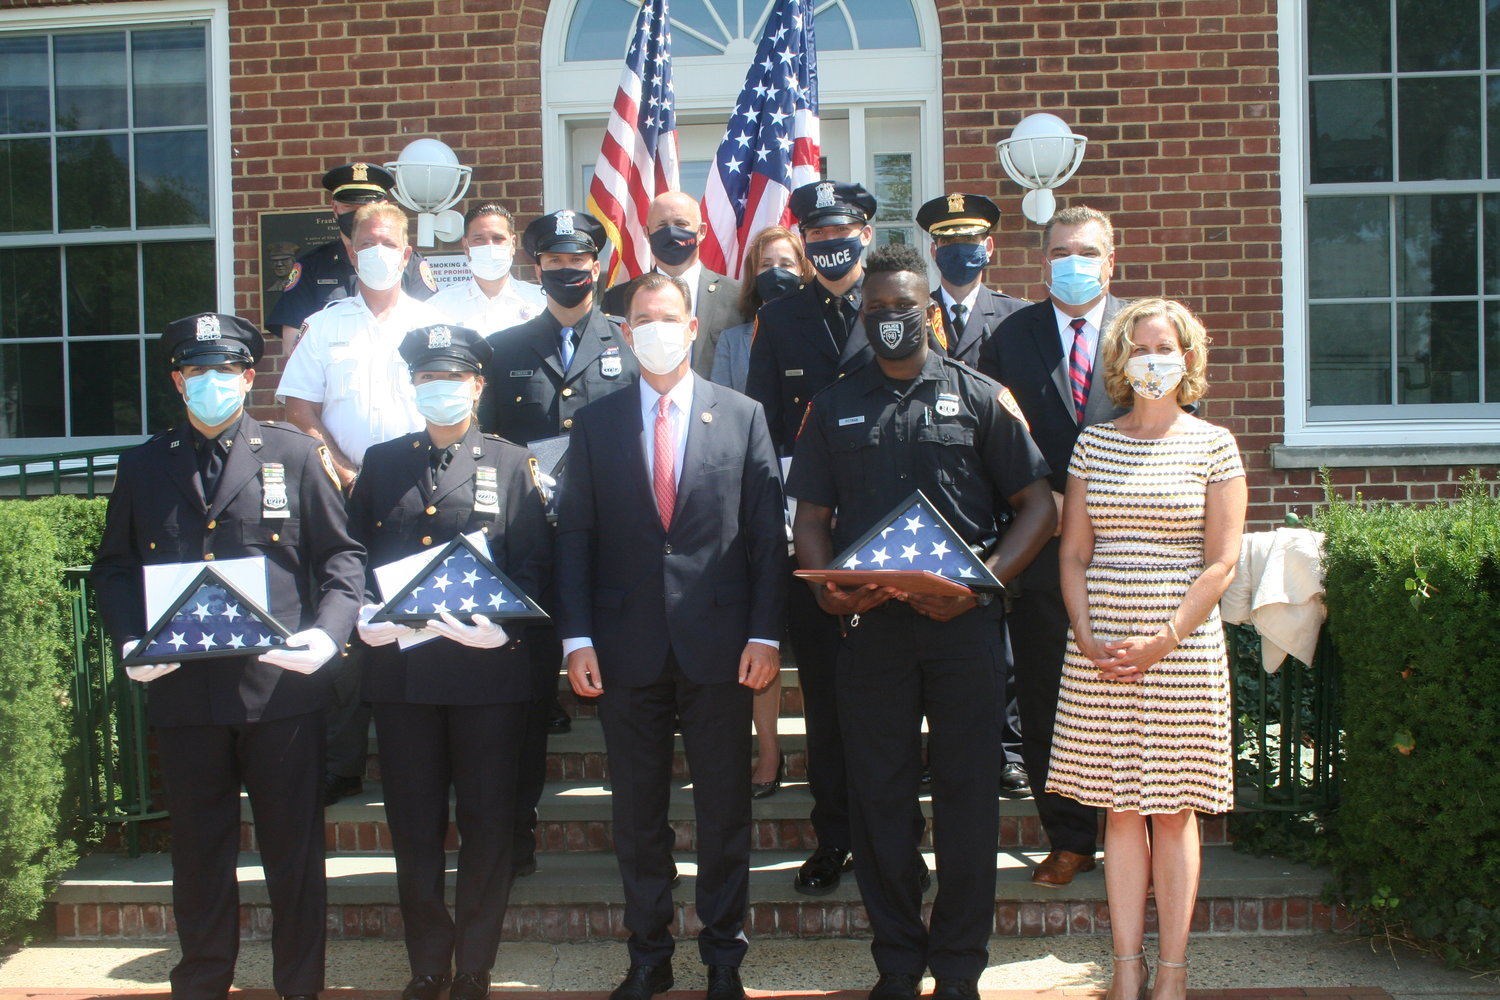 Suozzi, center front, said the five officers being honored were shining examples of good police work.